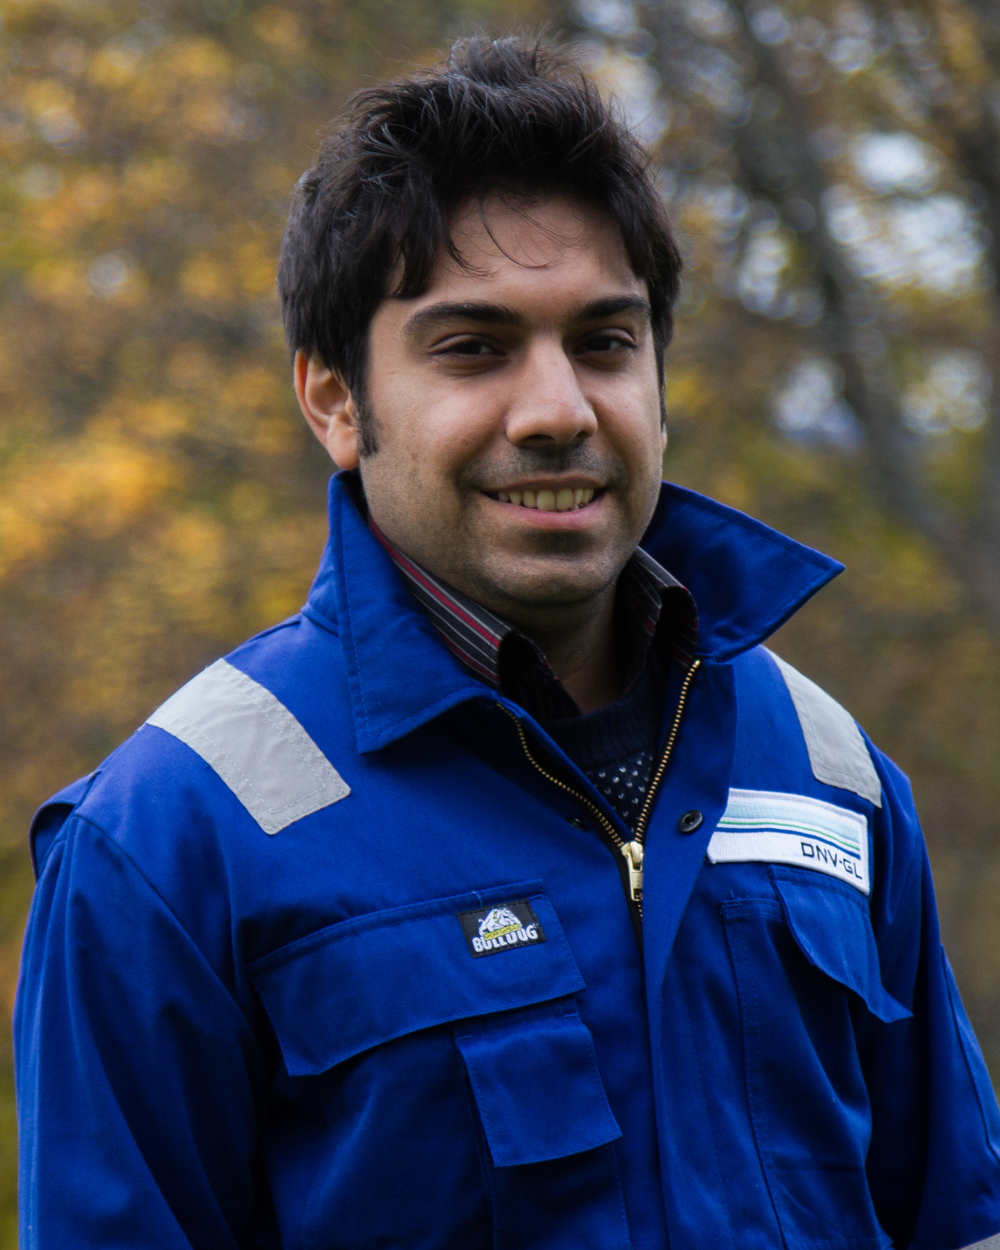 Hossein Neizan Hosseini –Systems Engineer, making the cars more reliability for the race Studies: Production Management Campus: NTNU Gløshaugen Hometown: Theran, Iran